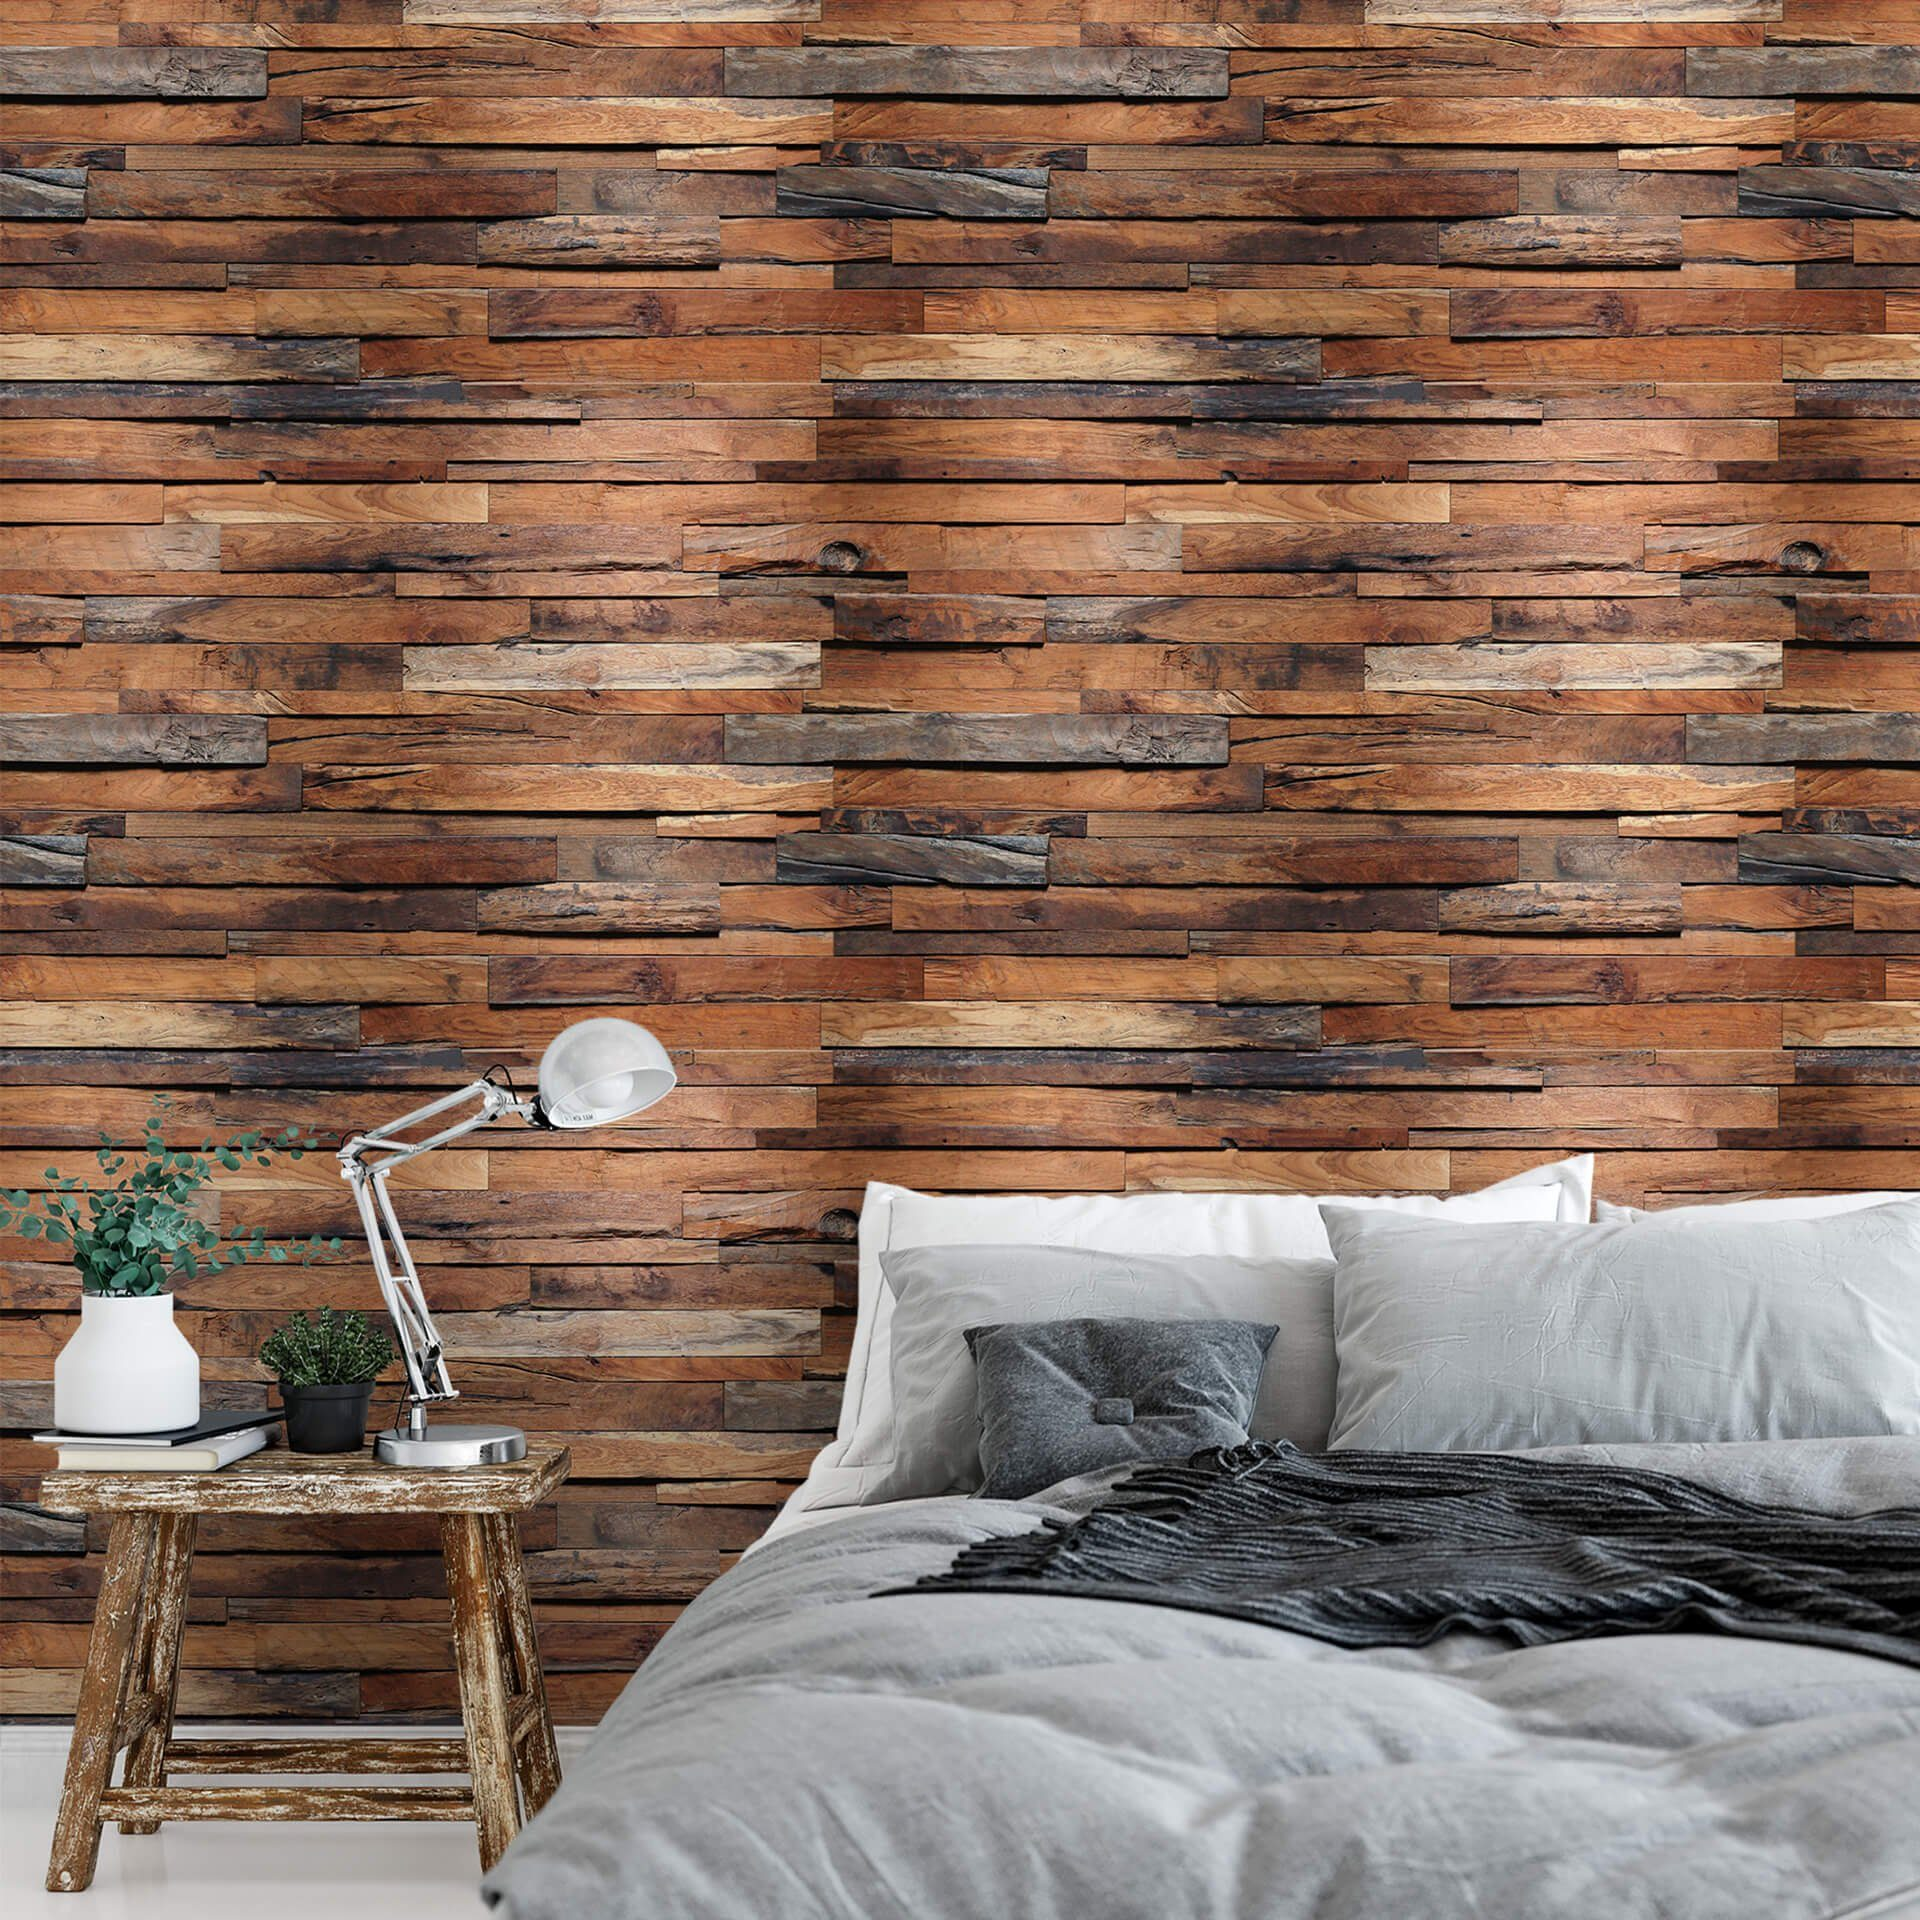 Holz Tapete Schlafzimmer A.s. Création Fototapete, Papier Foto Tapete Holz Braun Wooden Wall Dd118854 Designwalls 2.0 Online Kaufen | Otto